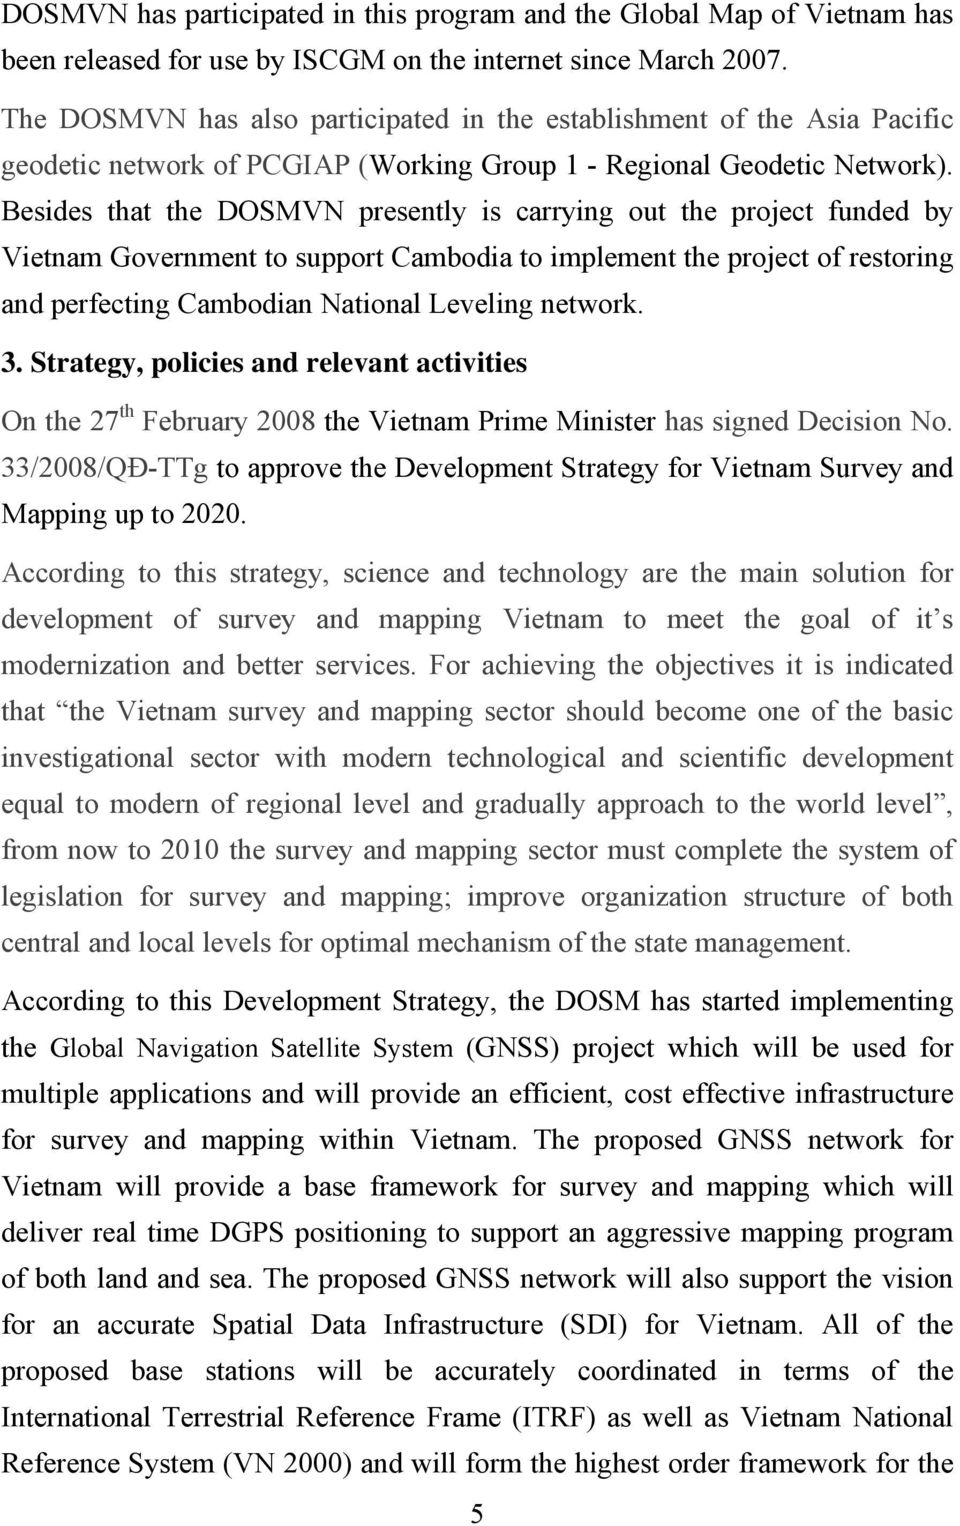 Besides that the DOSMVN presently is carrying out the project funded by Vietnam Government to support Cambodia to implement the project of restoring and perfecting Cambodian National Leveling network.